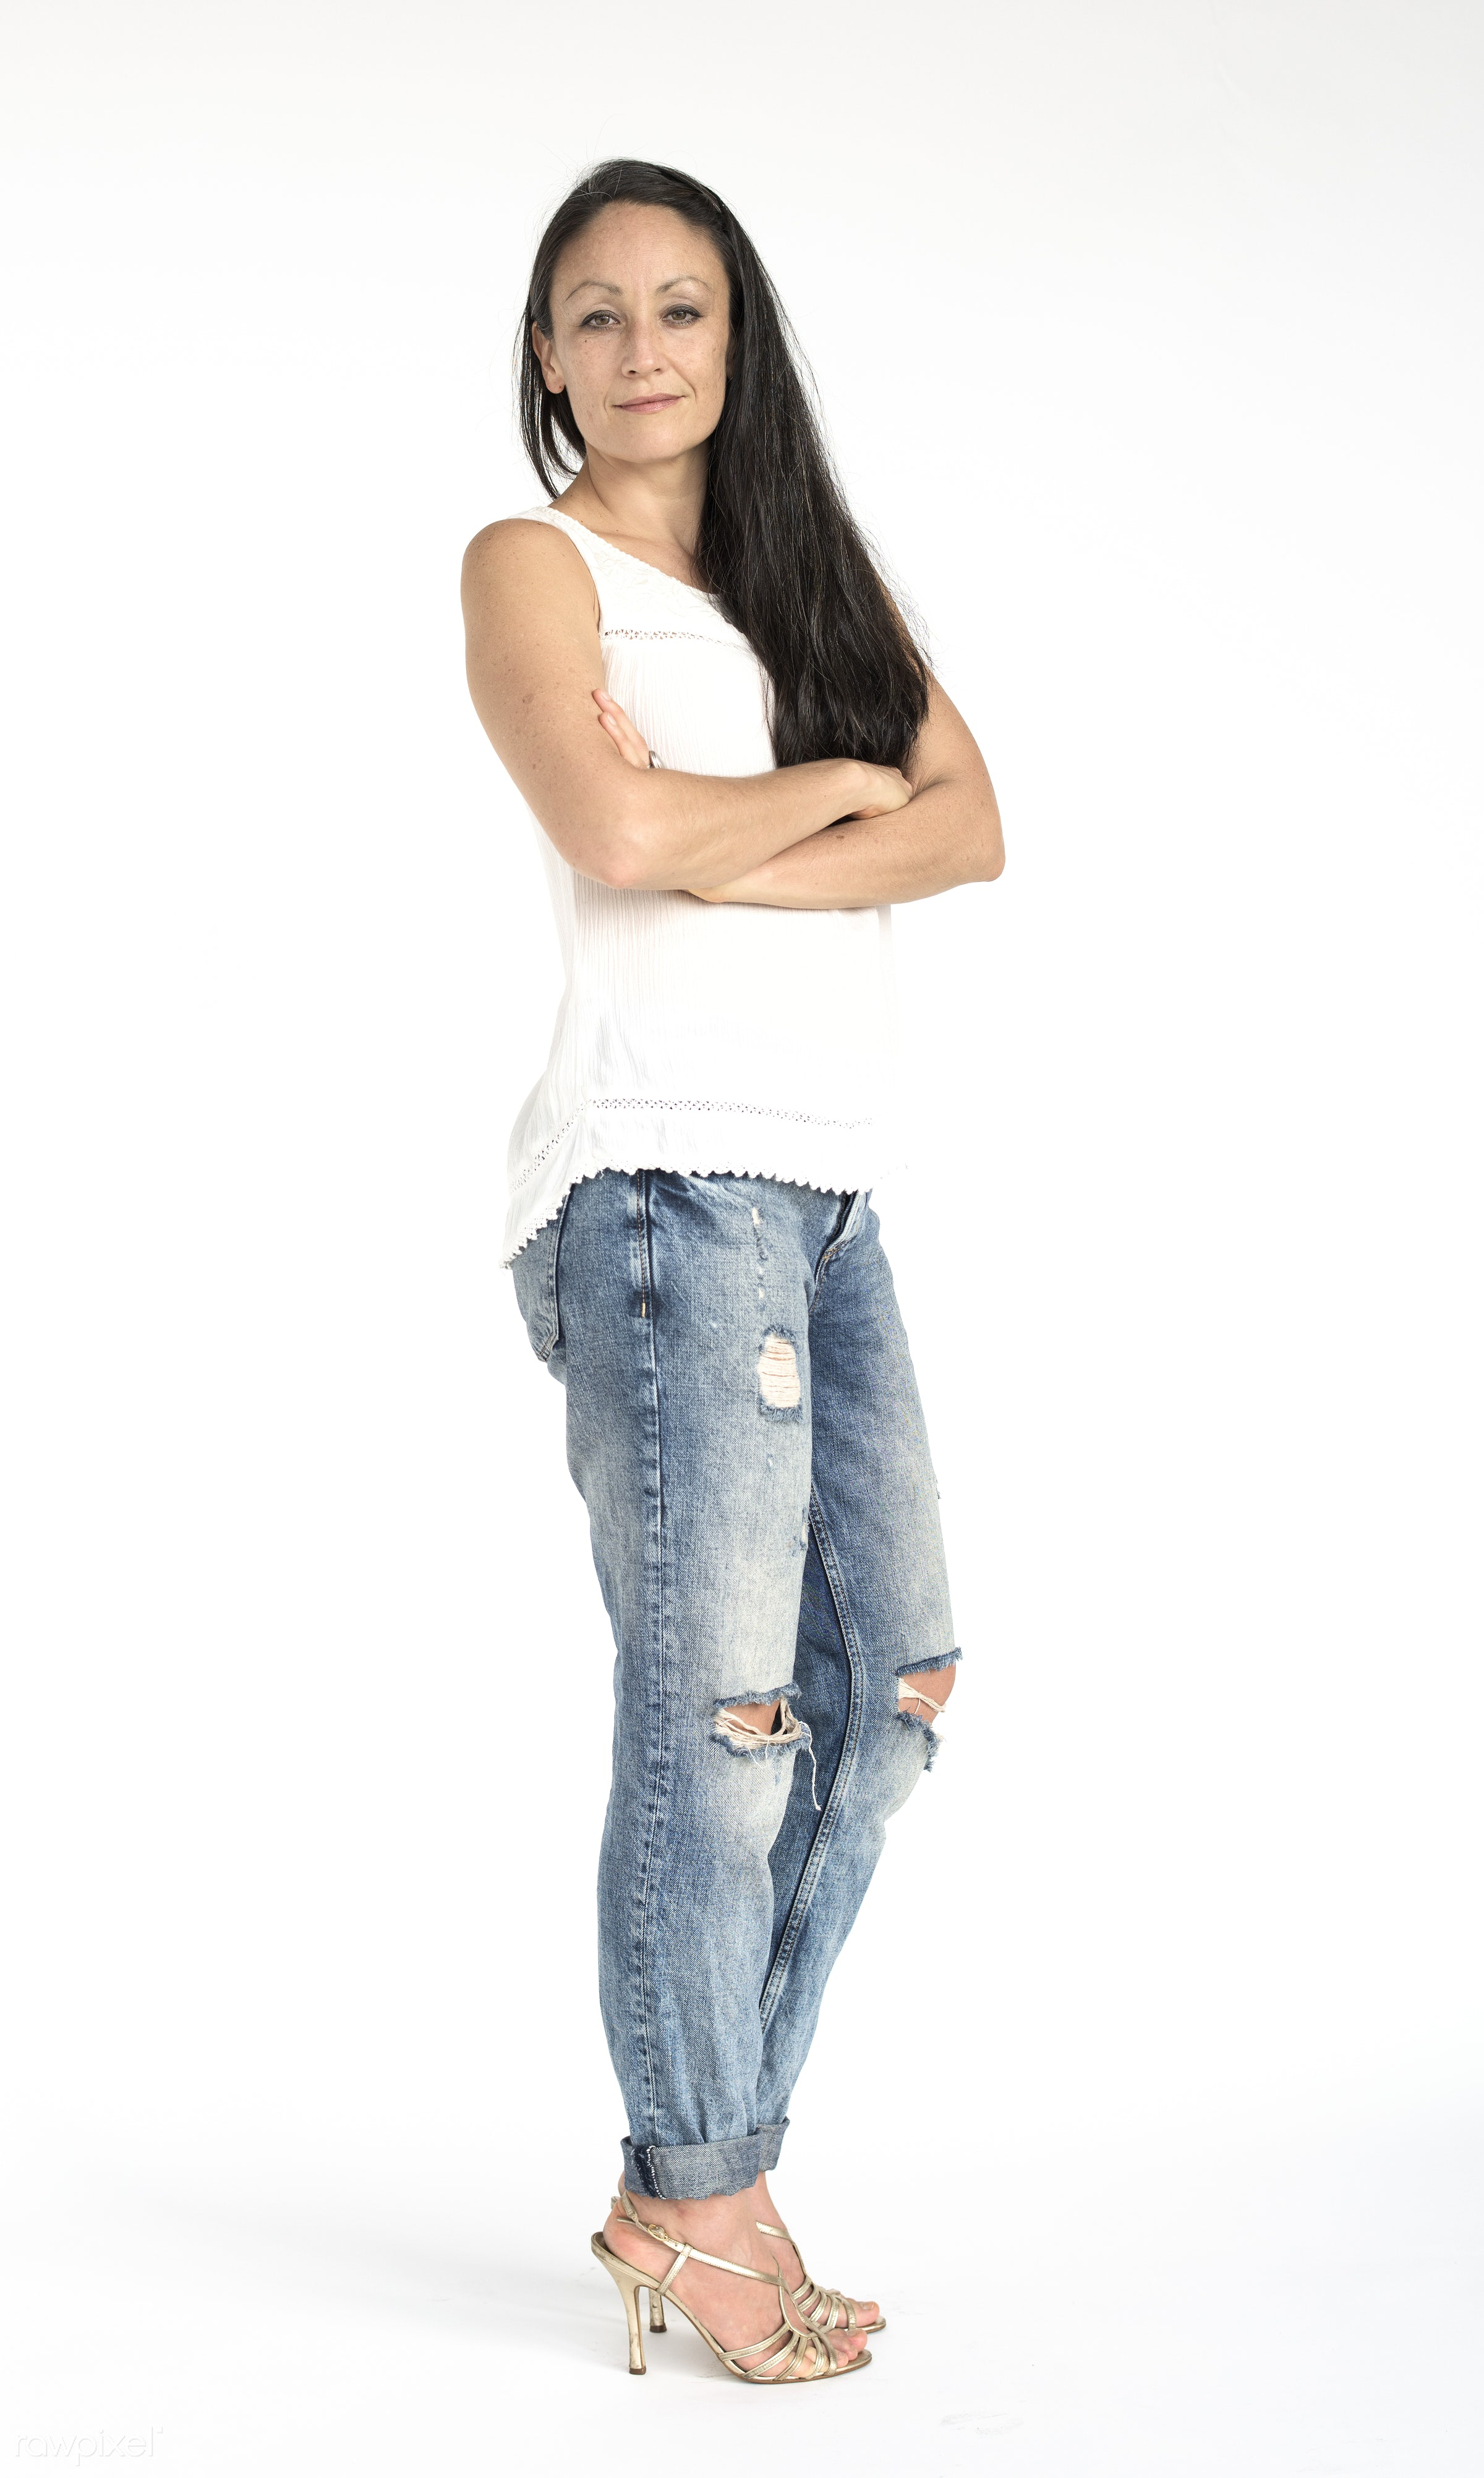 expression, studio, person, model, isolated on white, people, race, style, casual, lifestyle, isolated, white background,...